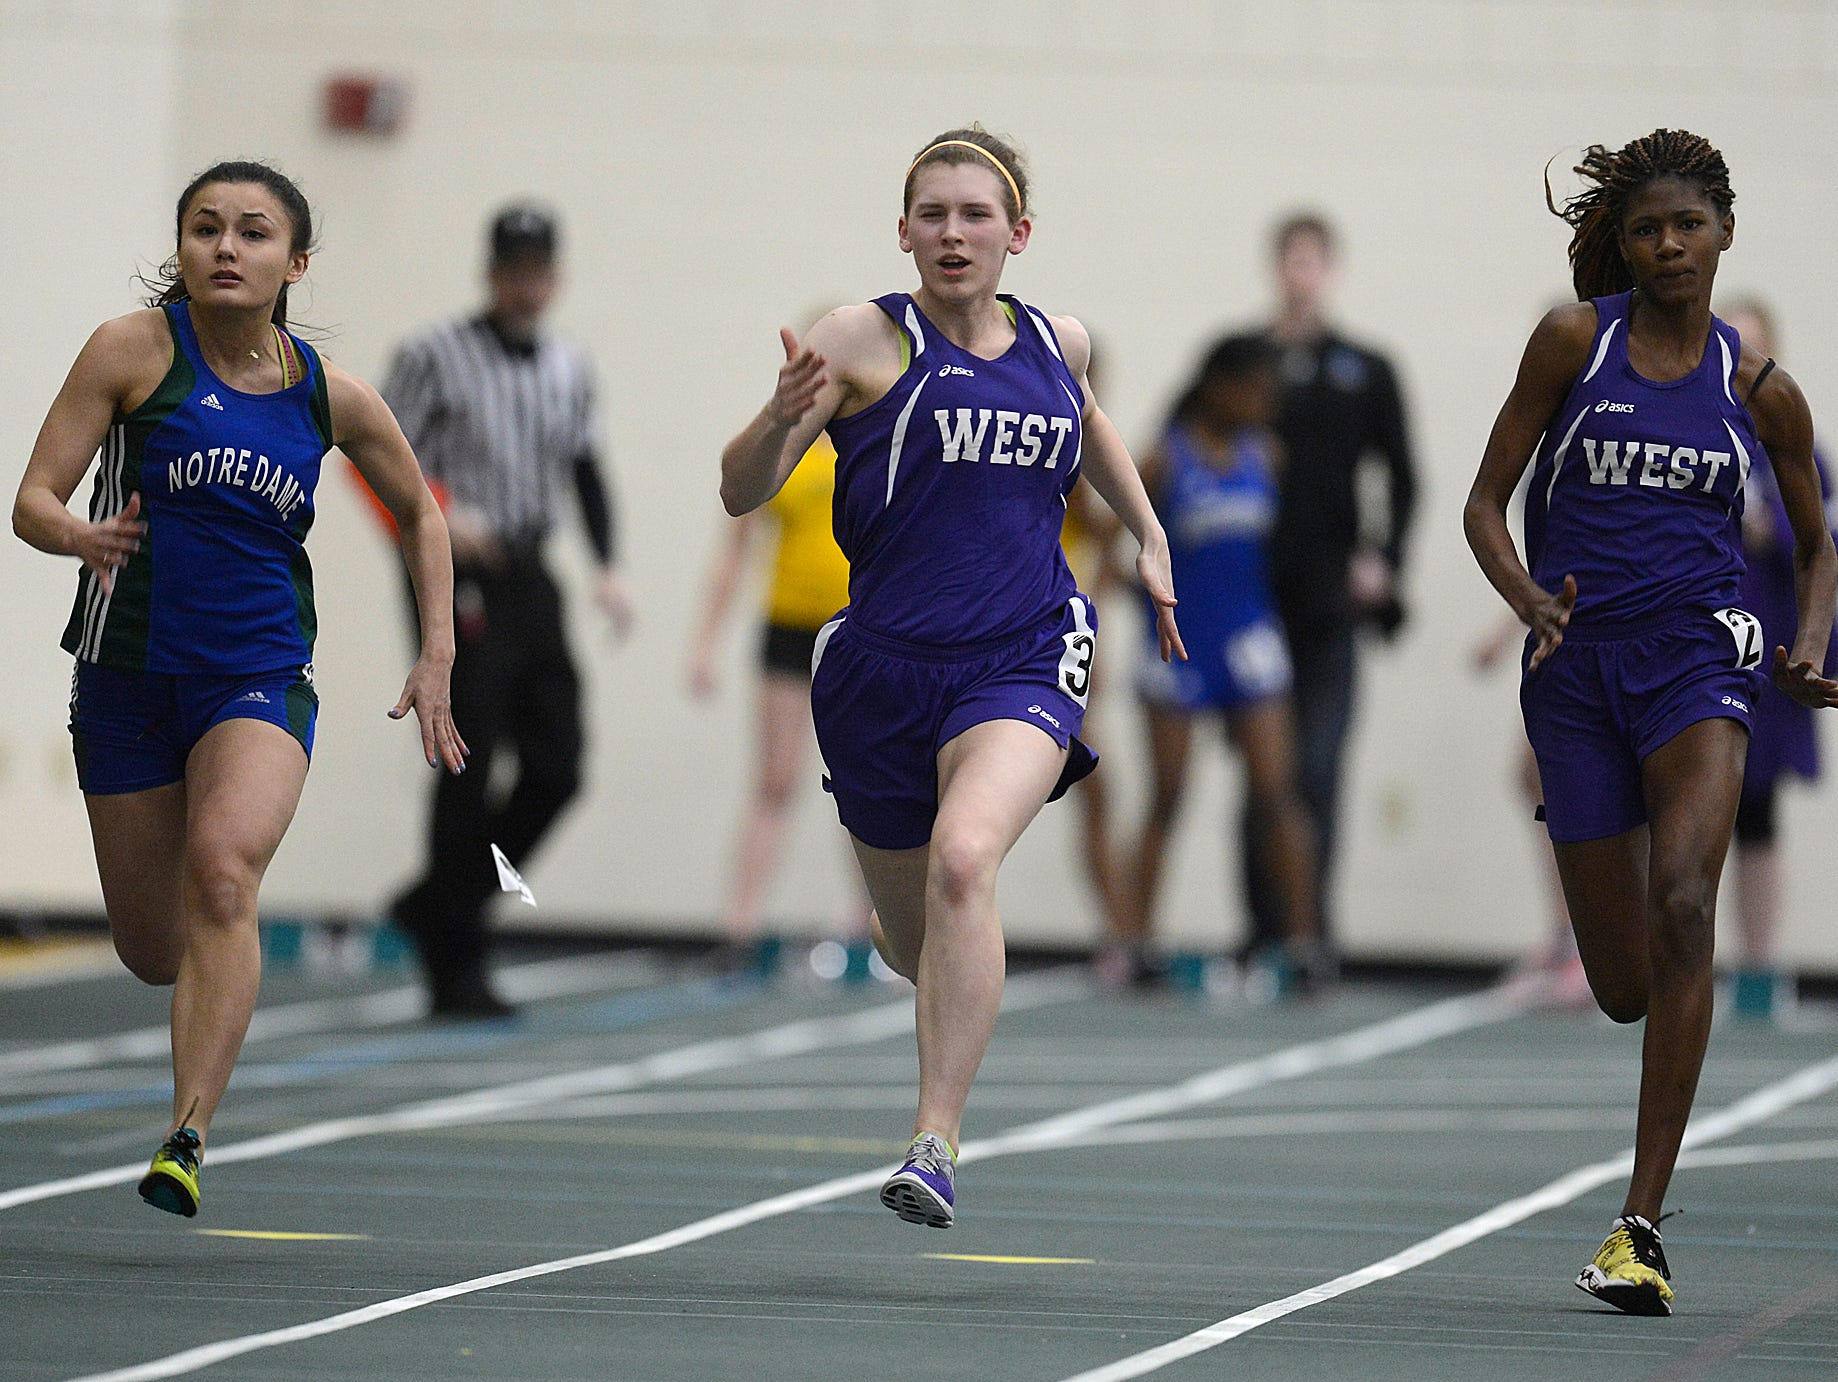 From left, Green Bay Notre Dame's Melaina Rapisarda, Green Bay West's Katelyn Leiden and Green Bay West's Maya Fisher compete in the 45 meter dash during the 16th annual Preble Indoor Invitational at Green Bay Preble High School on Wednesday, March 18, 2015.